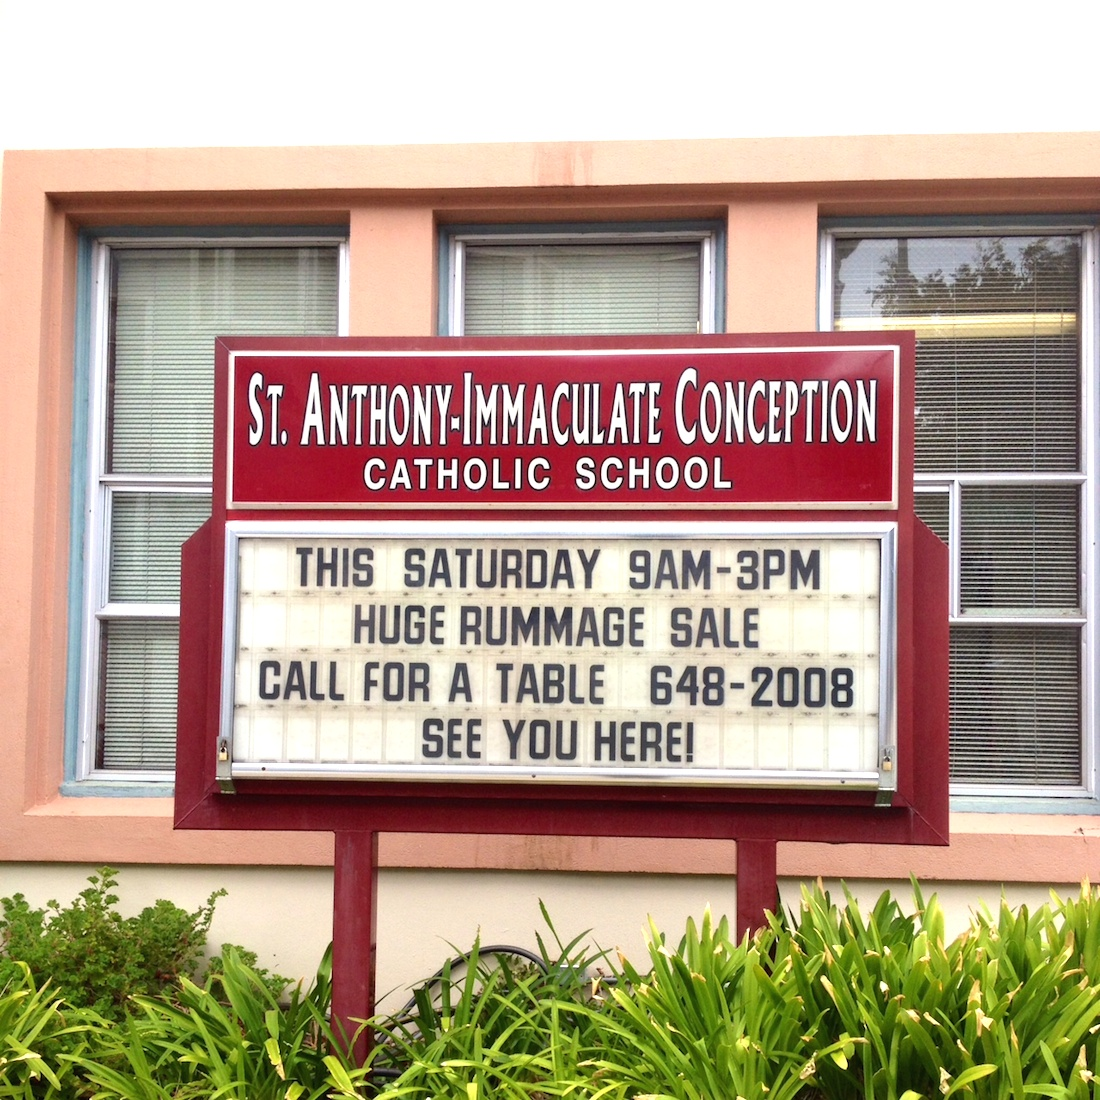 Rummage Sale Immaculate Conception Autos Post